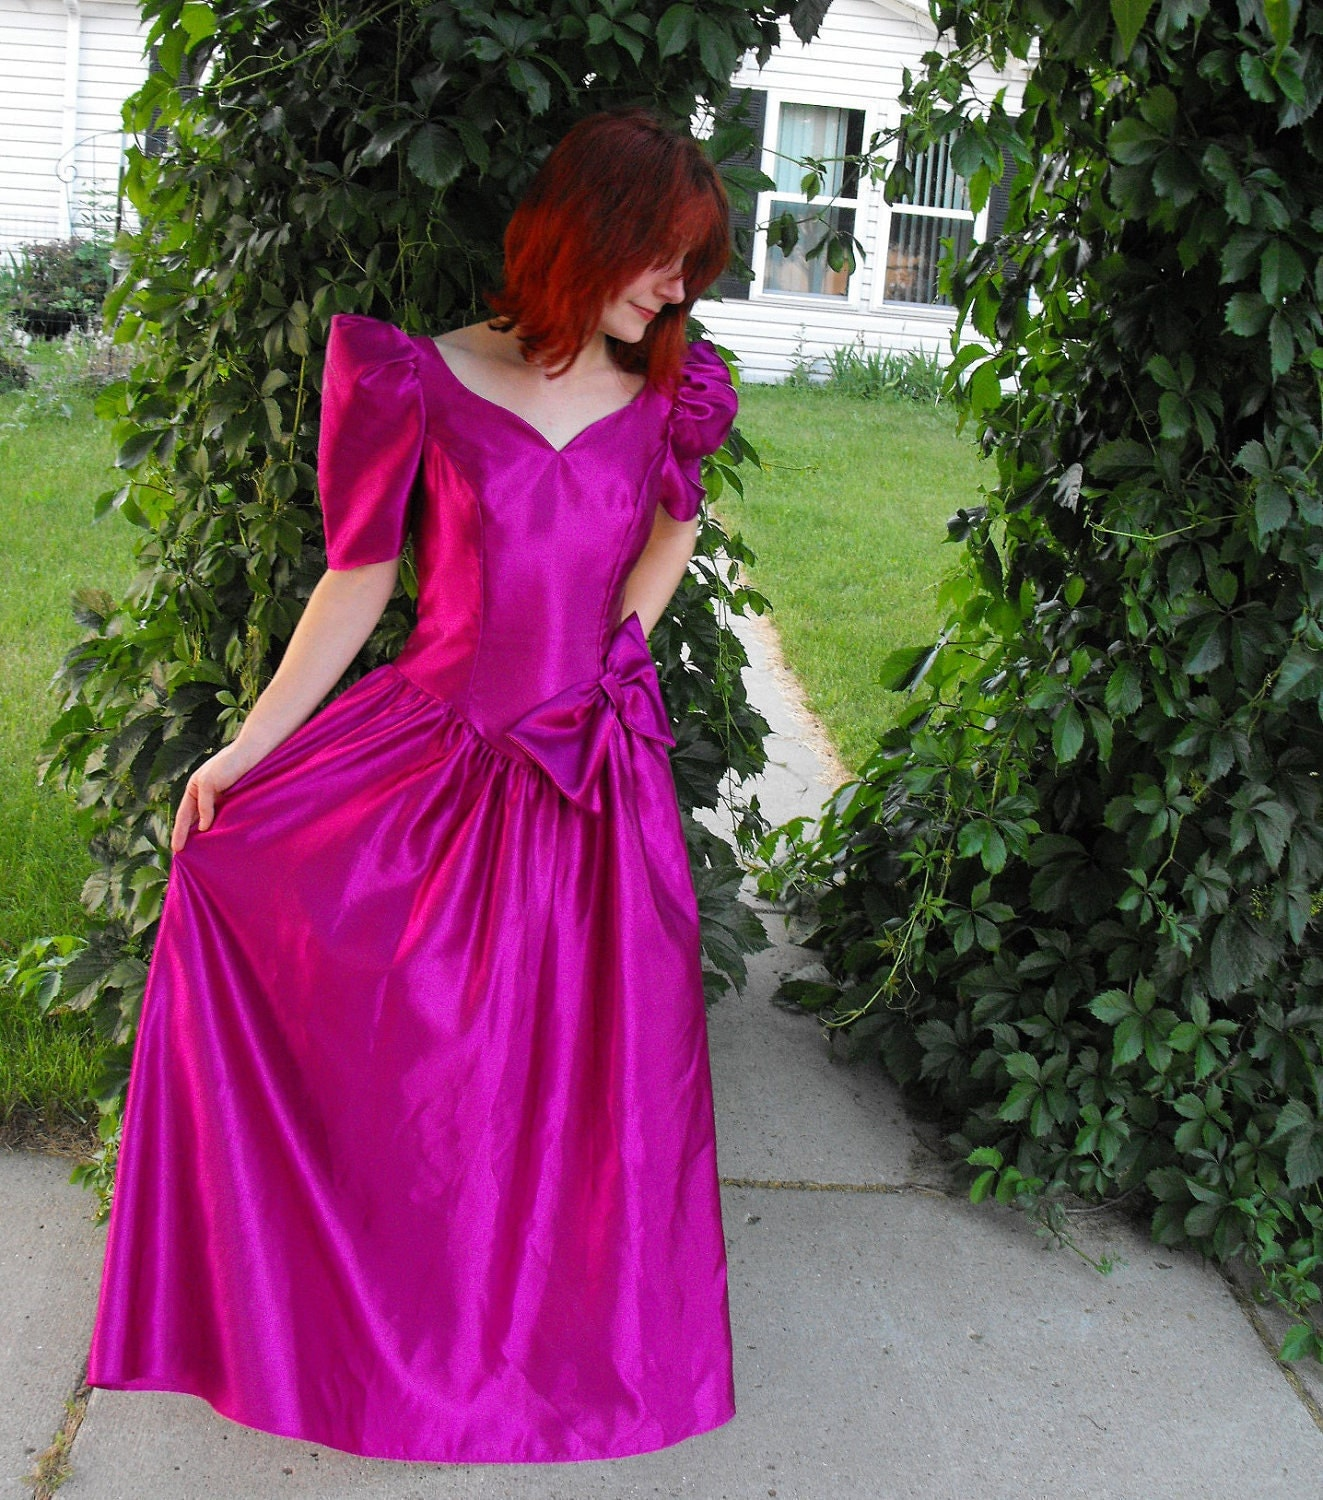 Vintage 80s Prom Dress Gown Magenta Pink Romantic Poof XS